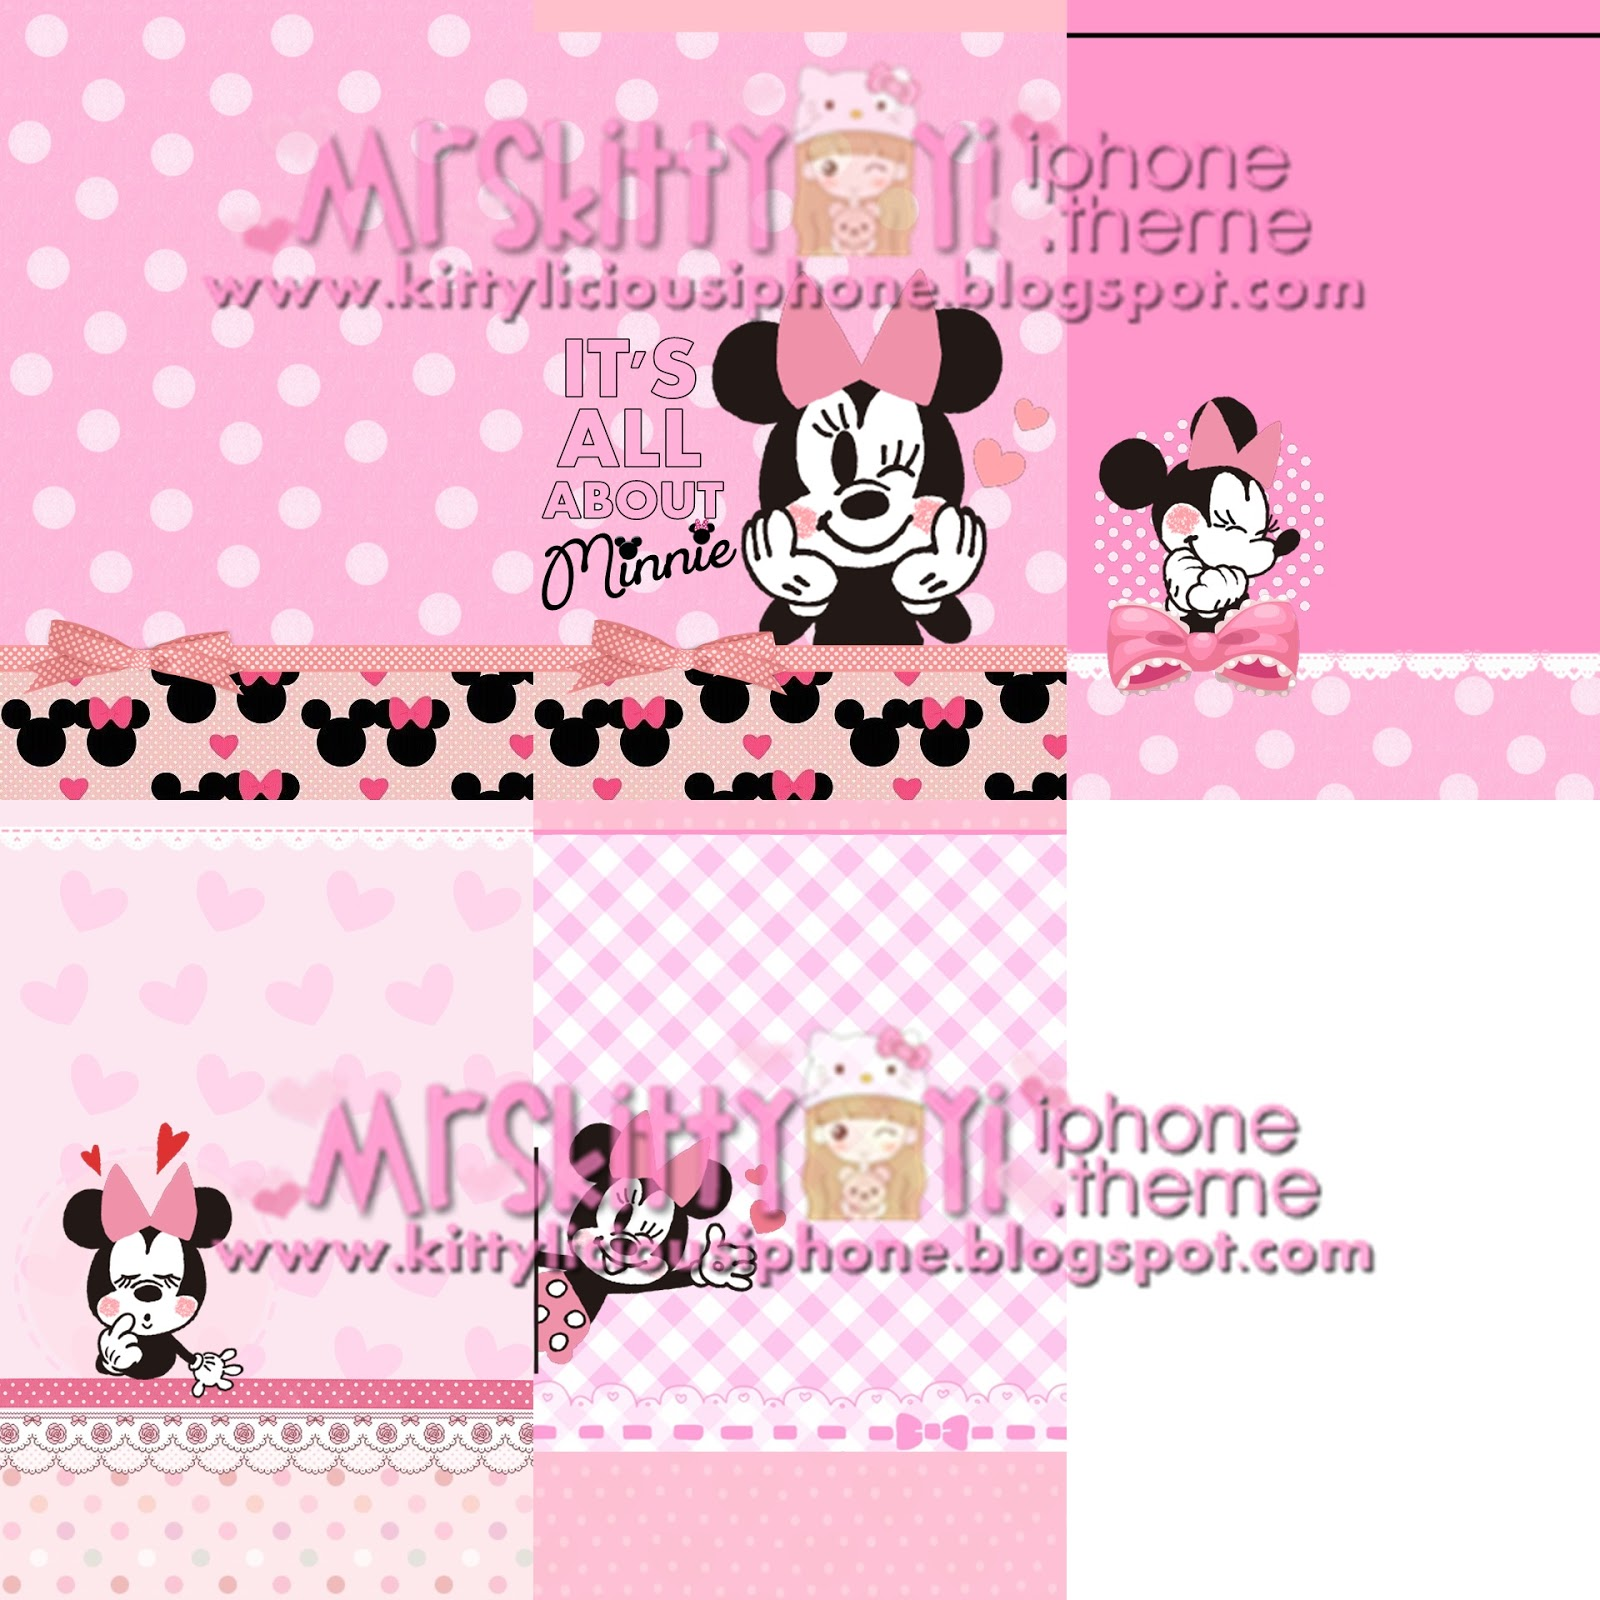 Wallpaper iphone minnie mouse -  All Are Zip Into A Folder Named Minnie Mouse